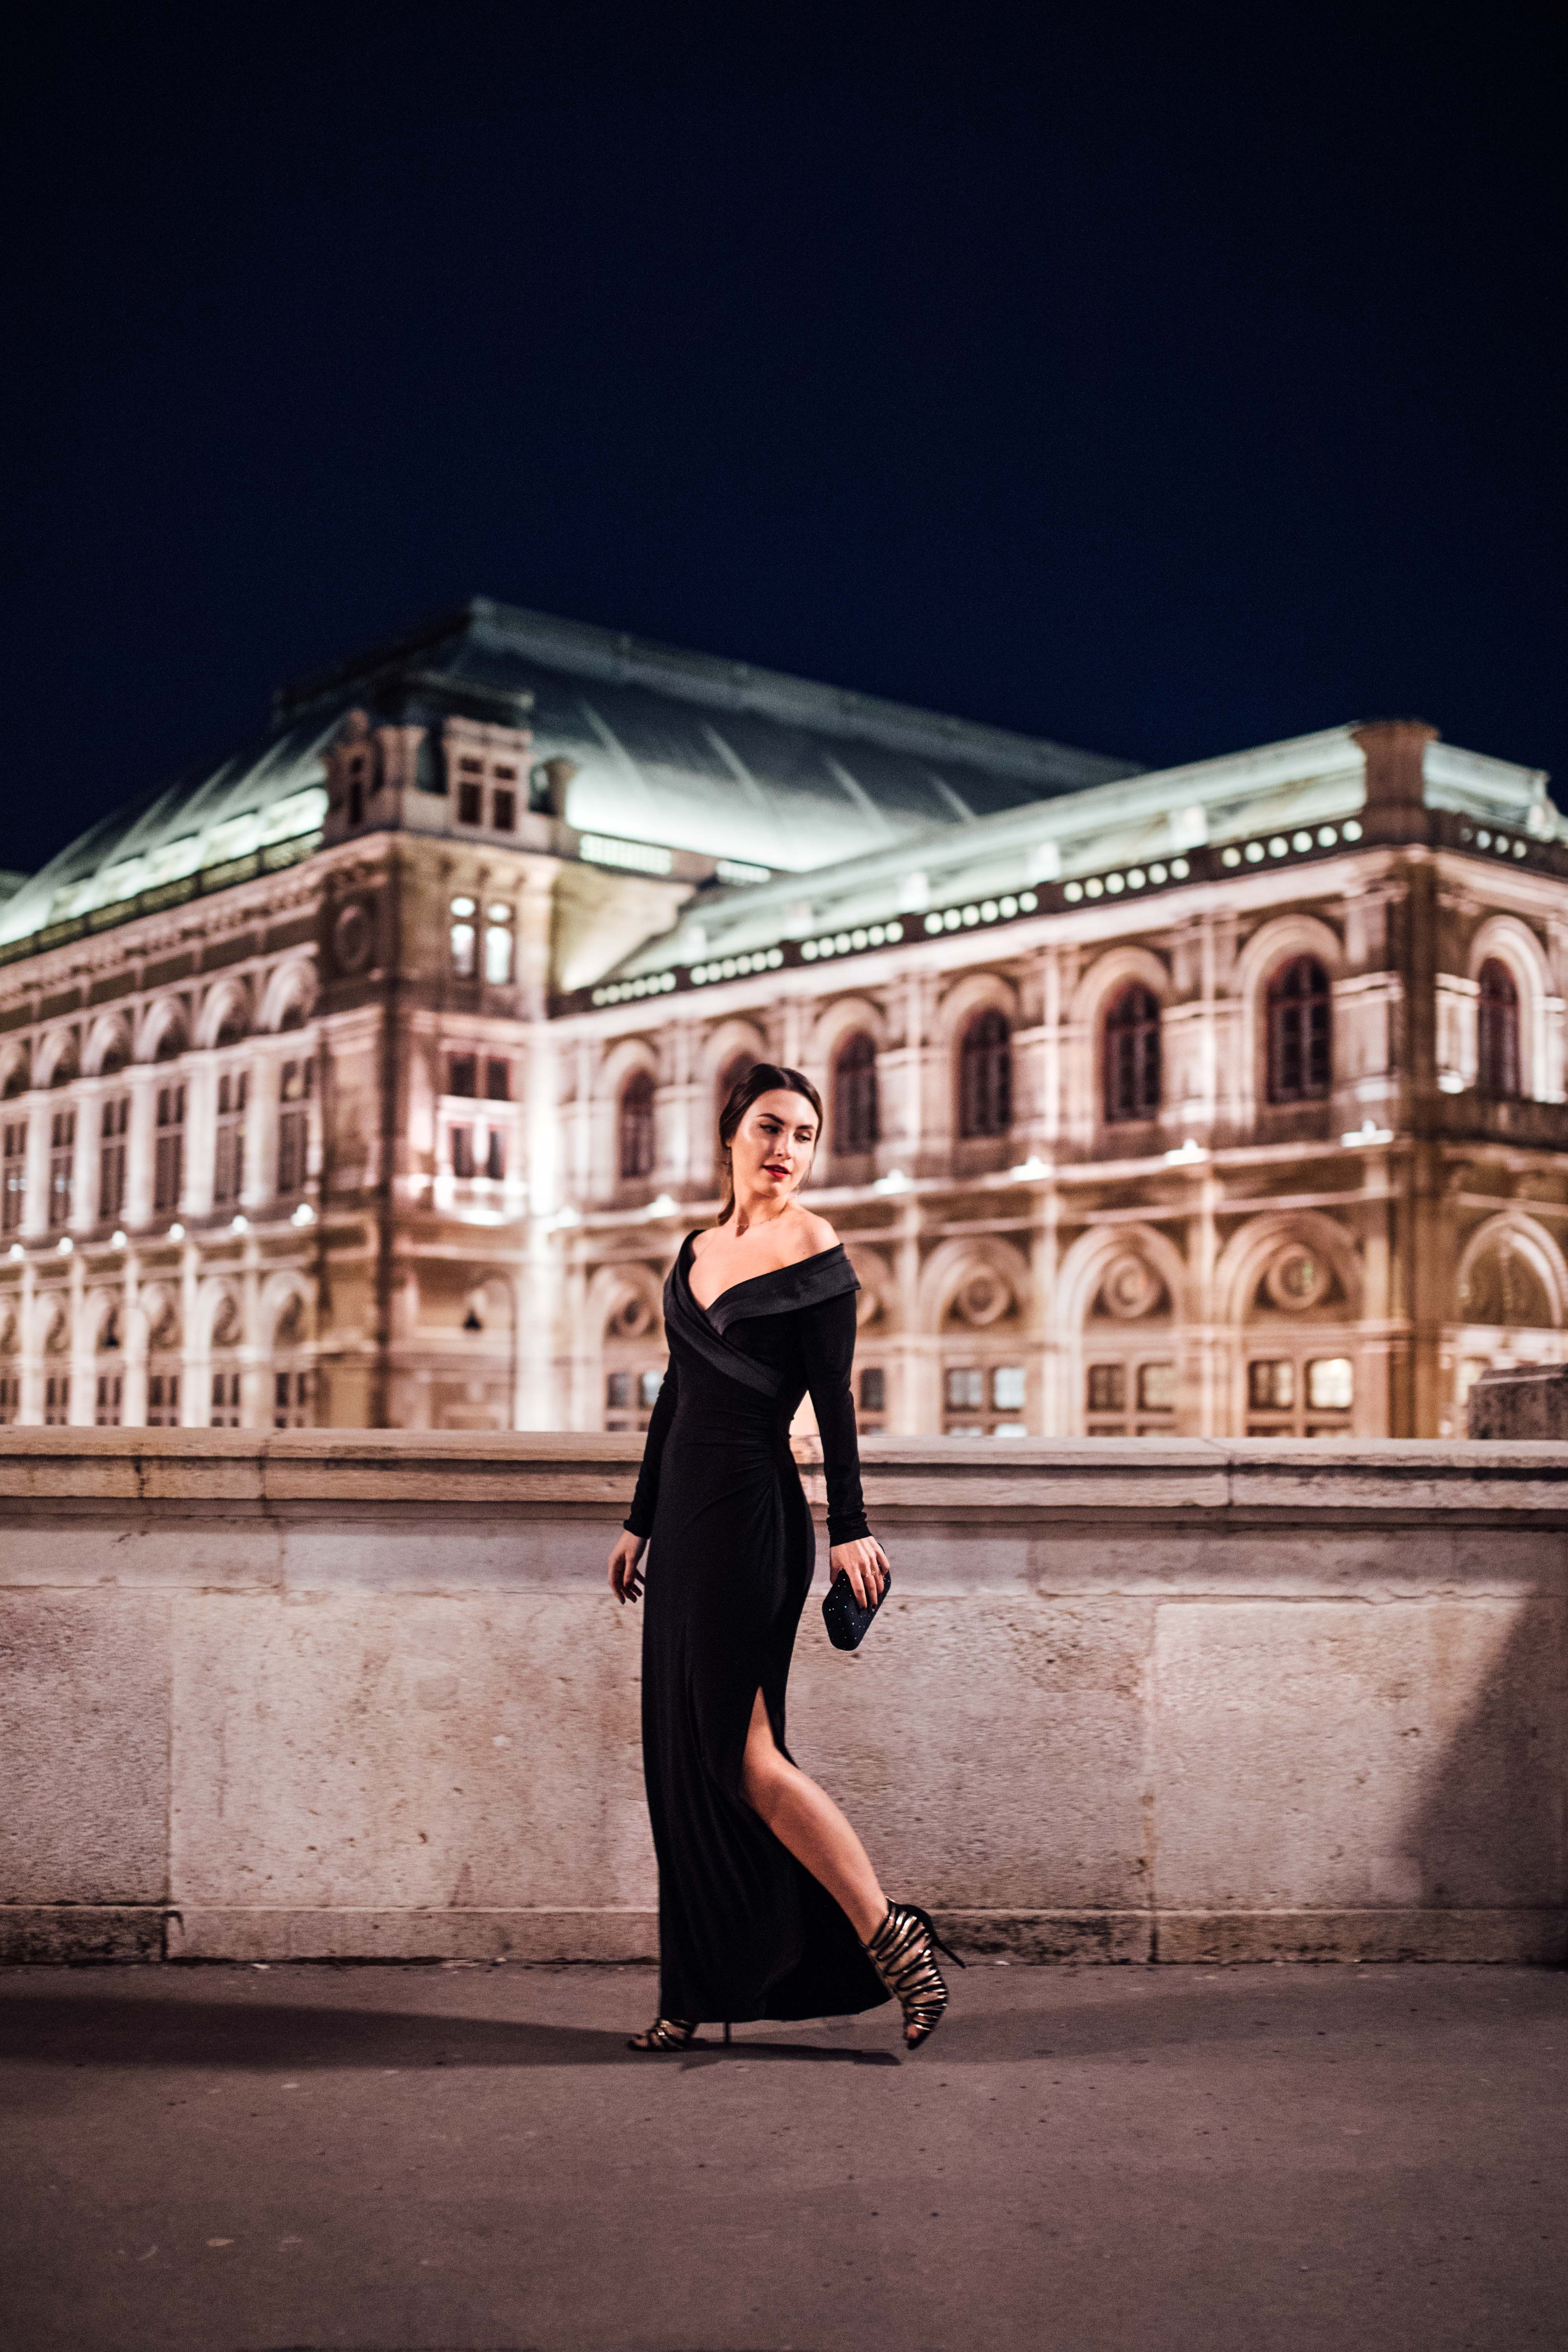 Vienna Opera Ball 2017: A Fairytale Moment | You rock my life